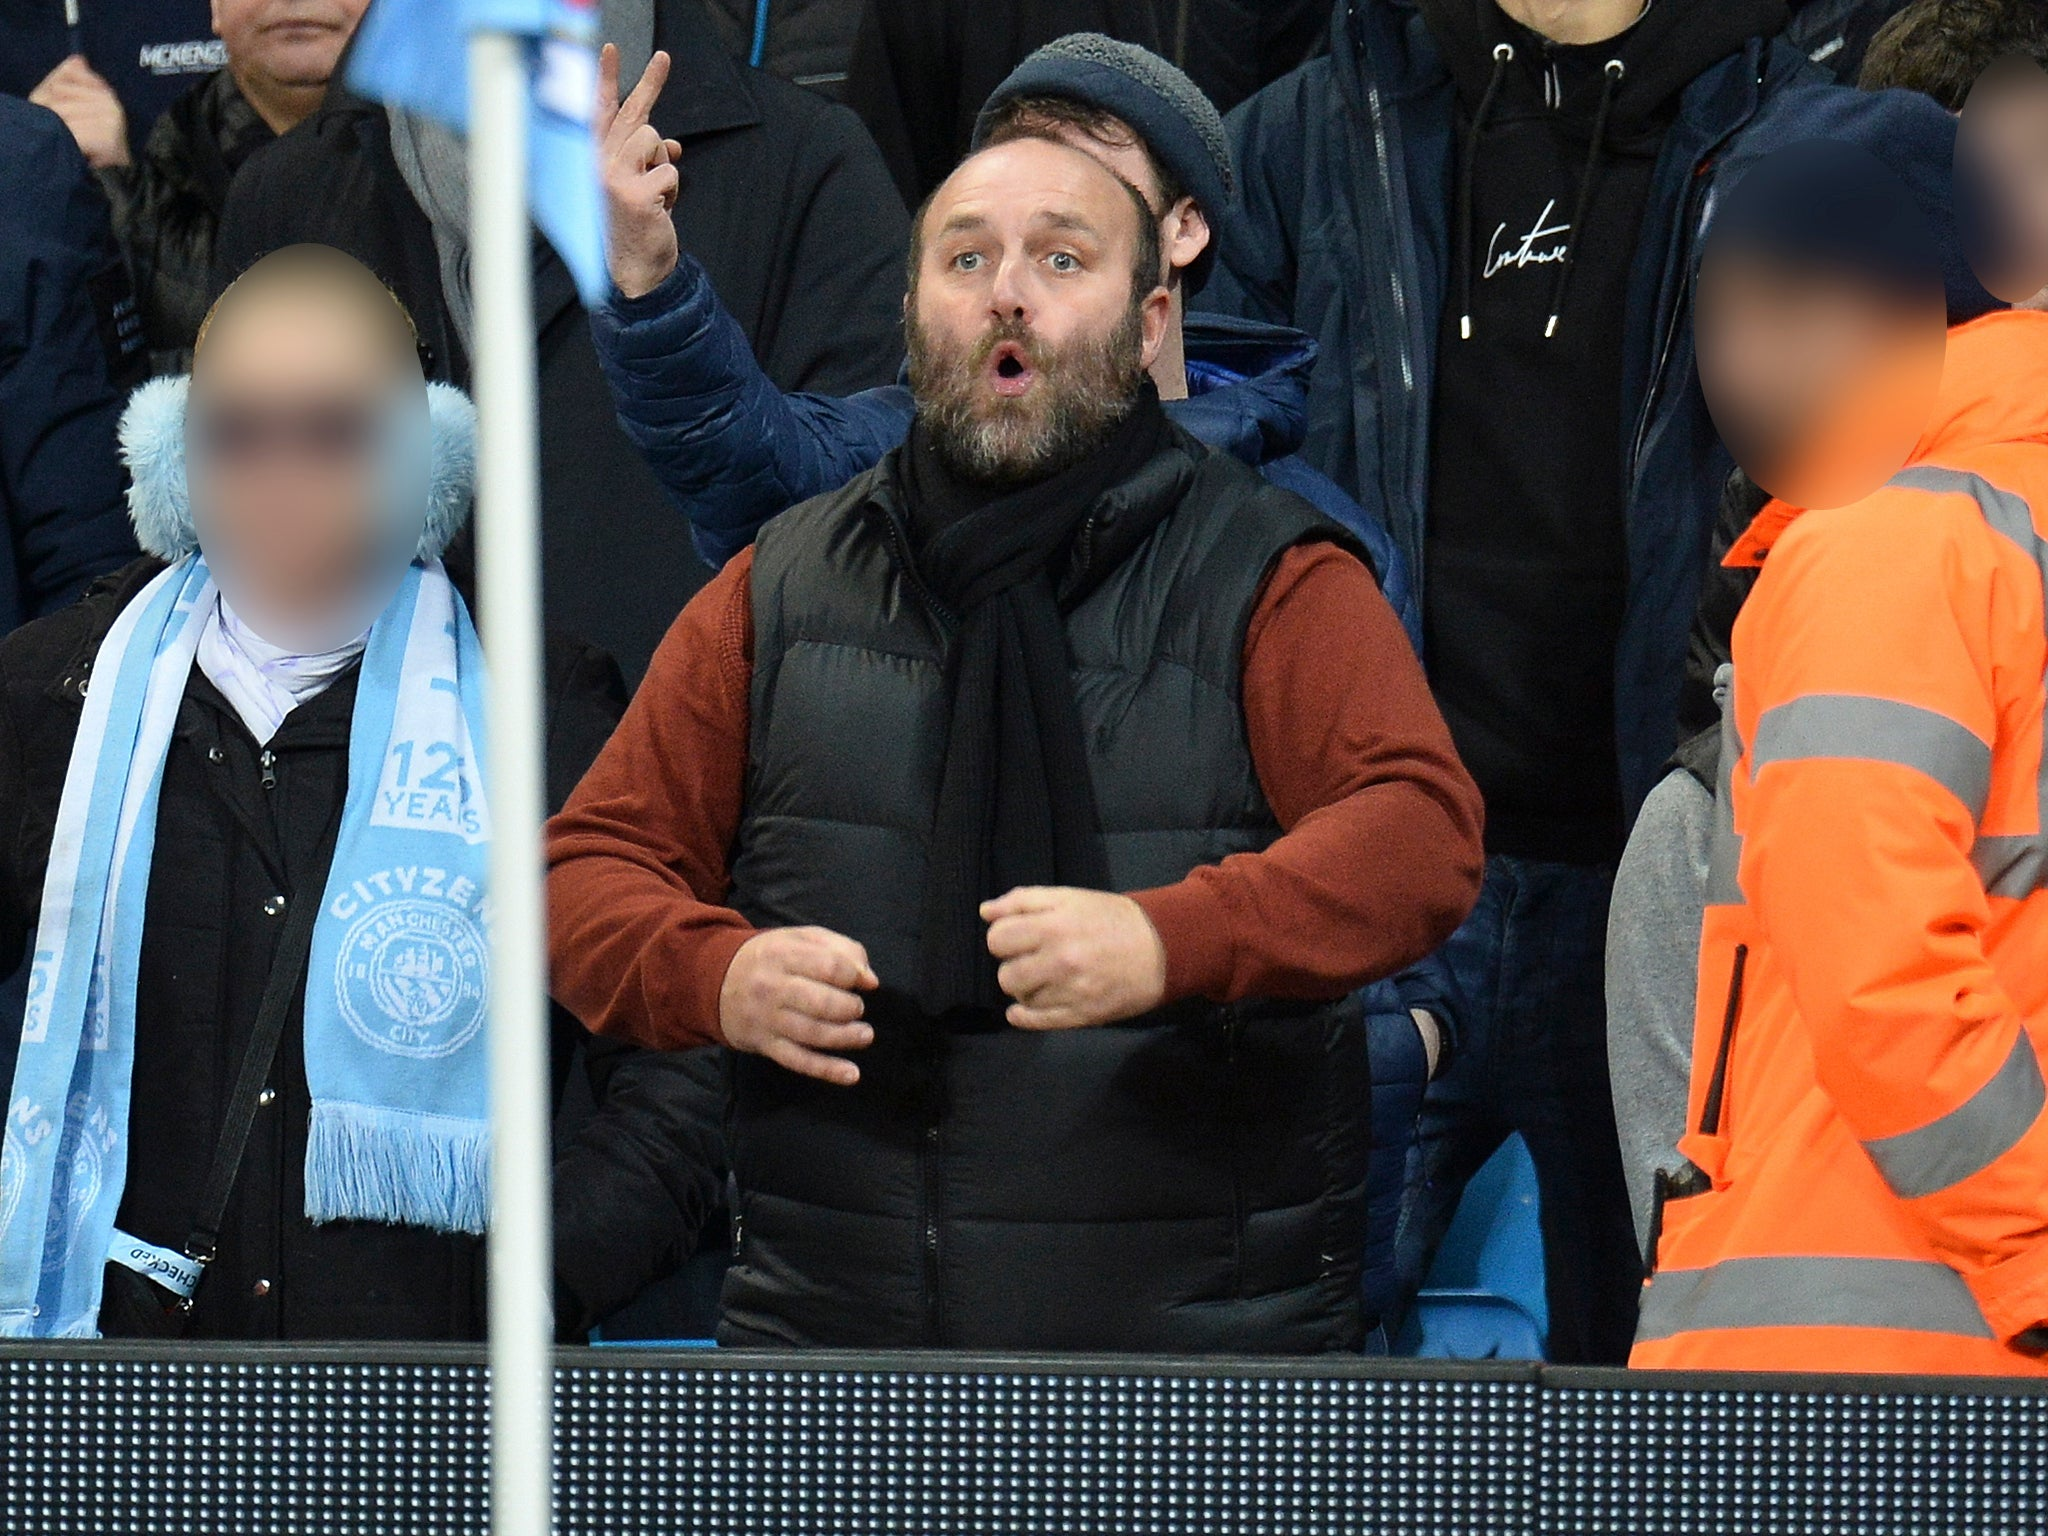 FA to investigate allegations of racist abuse during Manchester derby